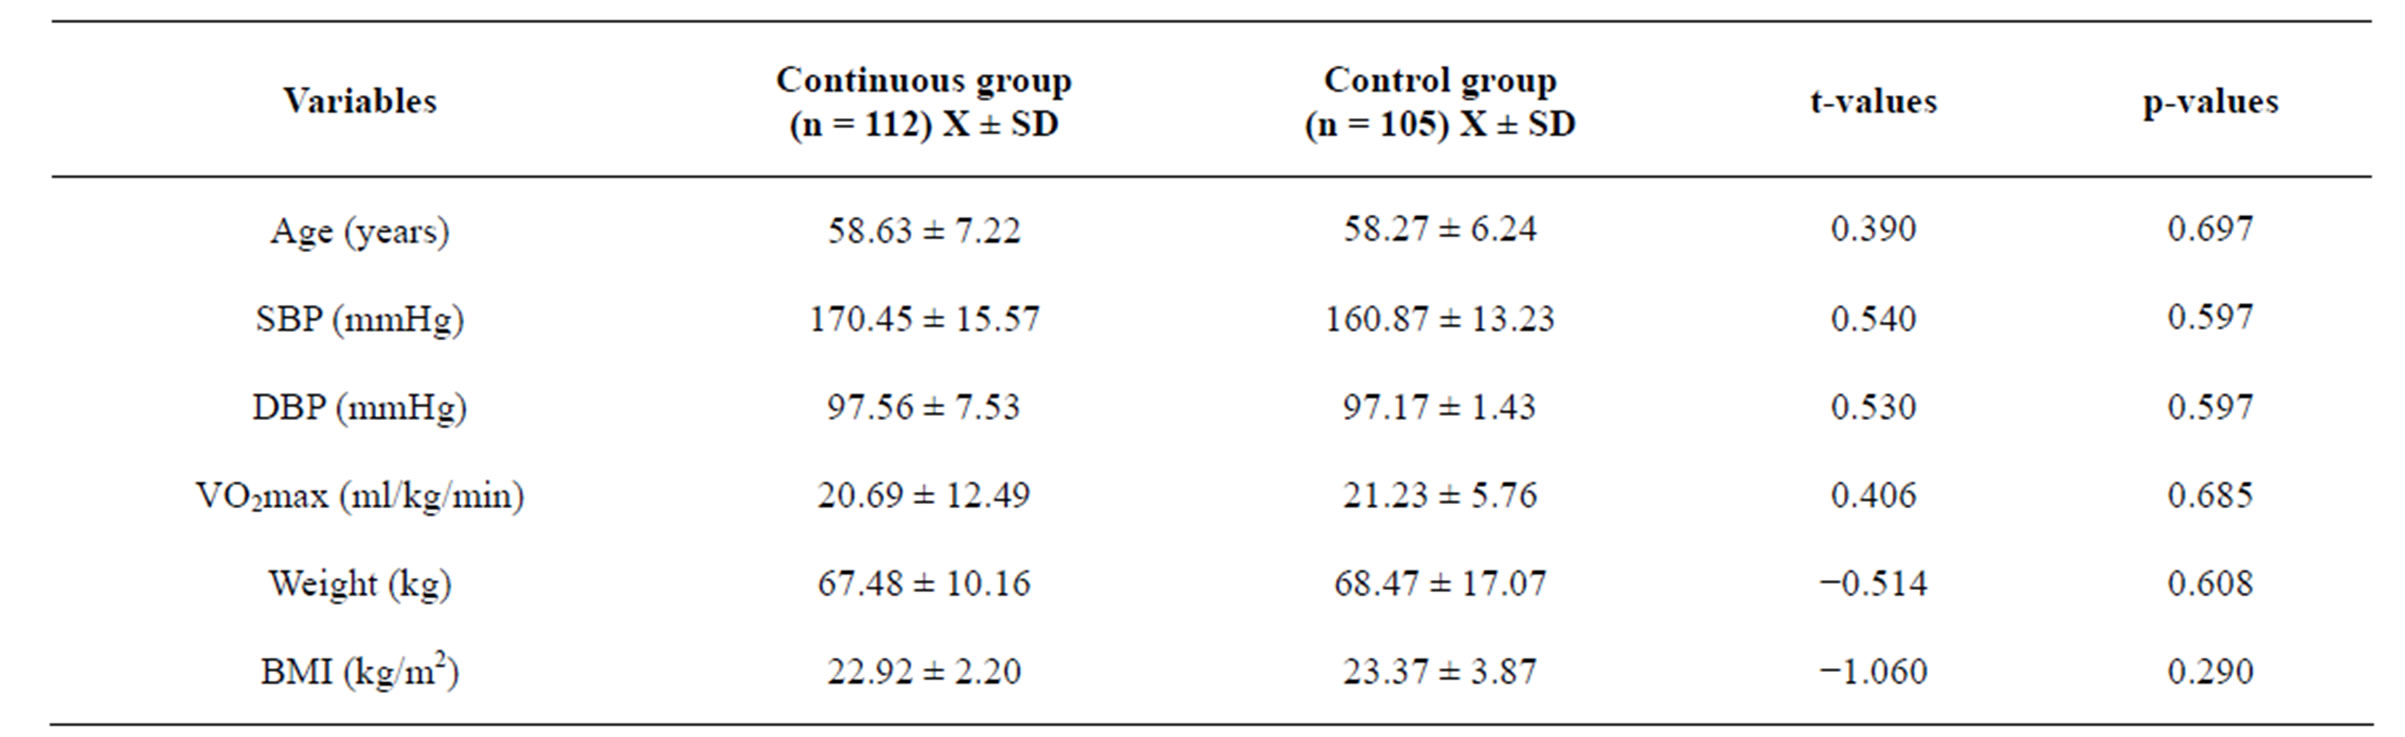 Effects And Correlates Of Continuous Training Programme On Psychosocial